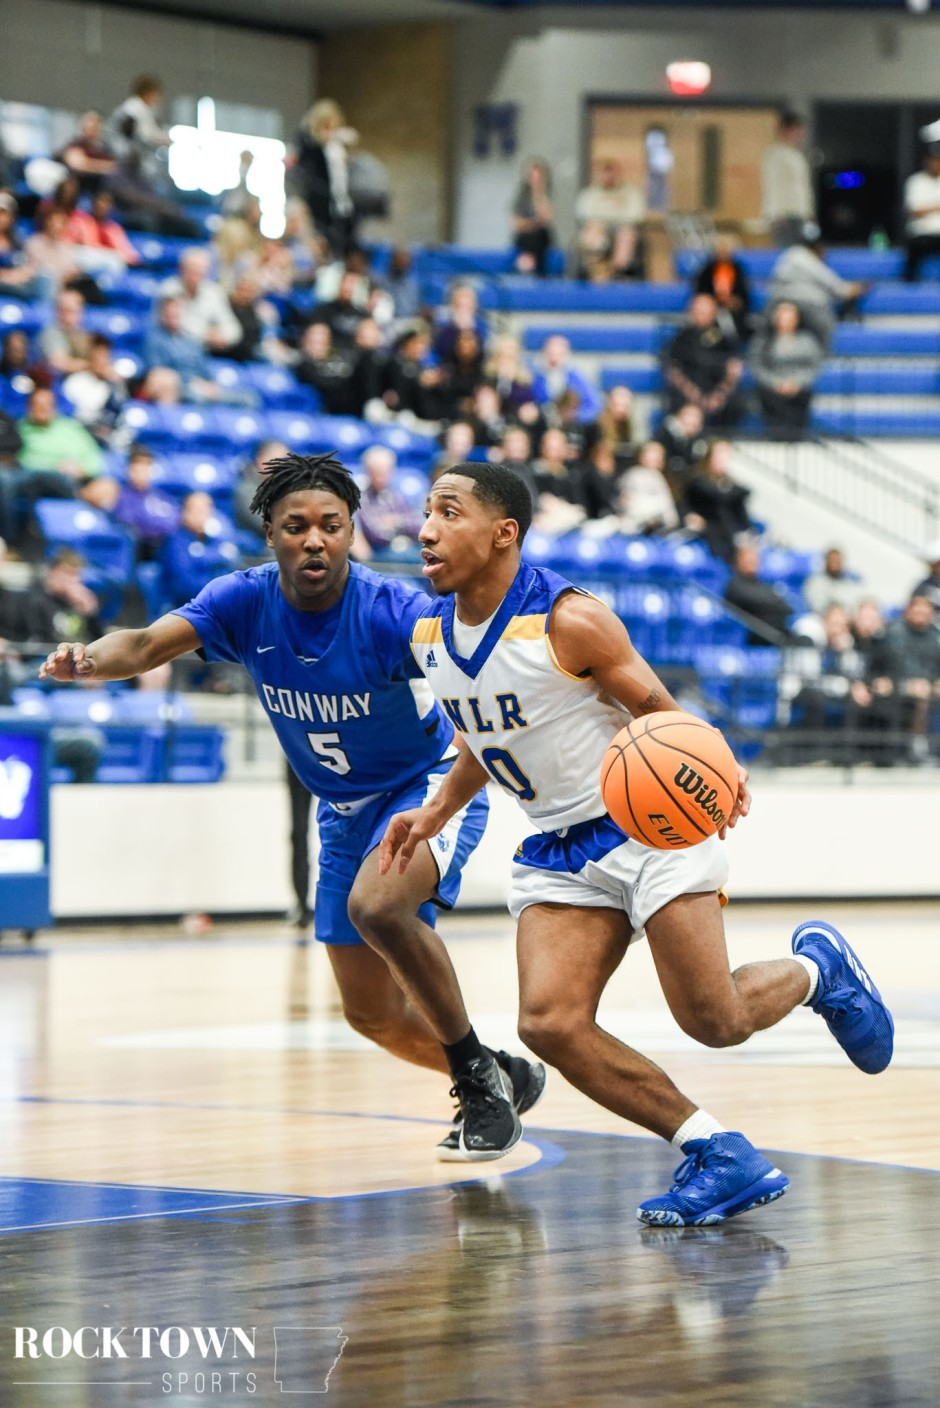 NLR_conway_bball_2020(i)-13